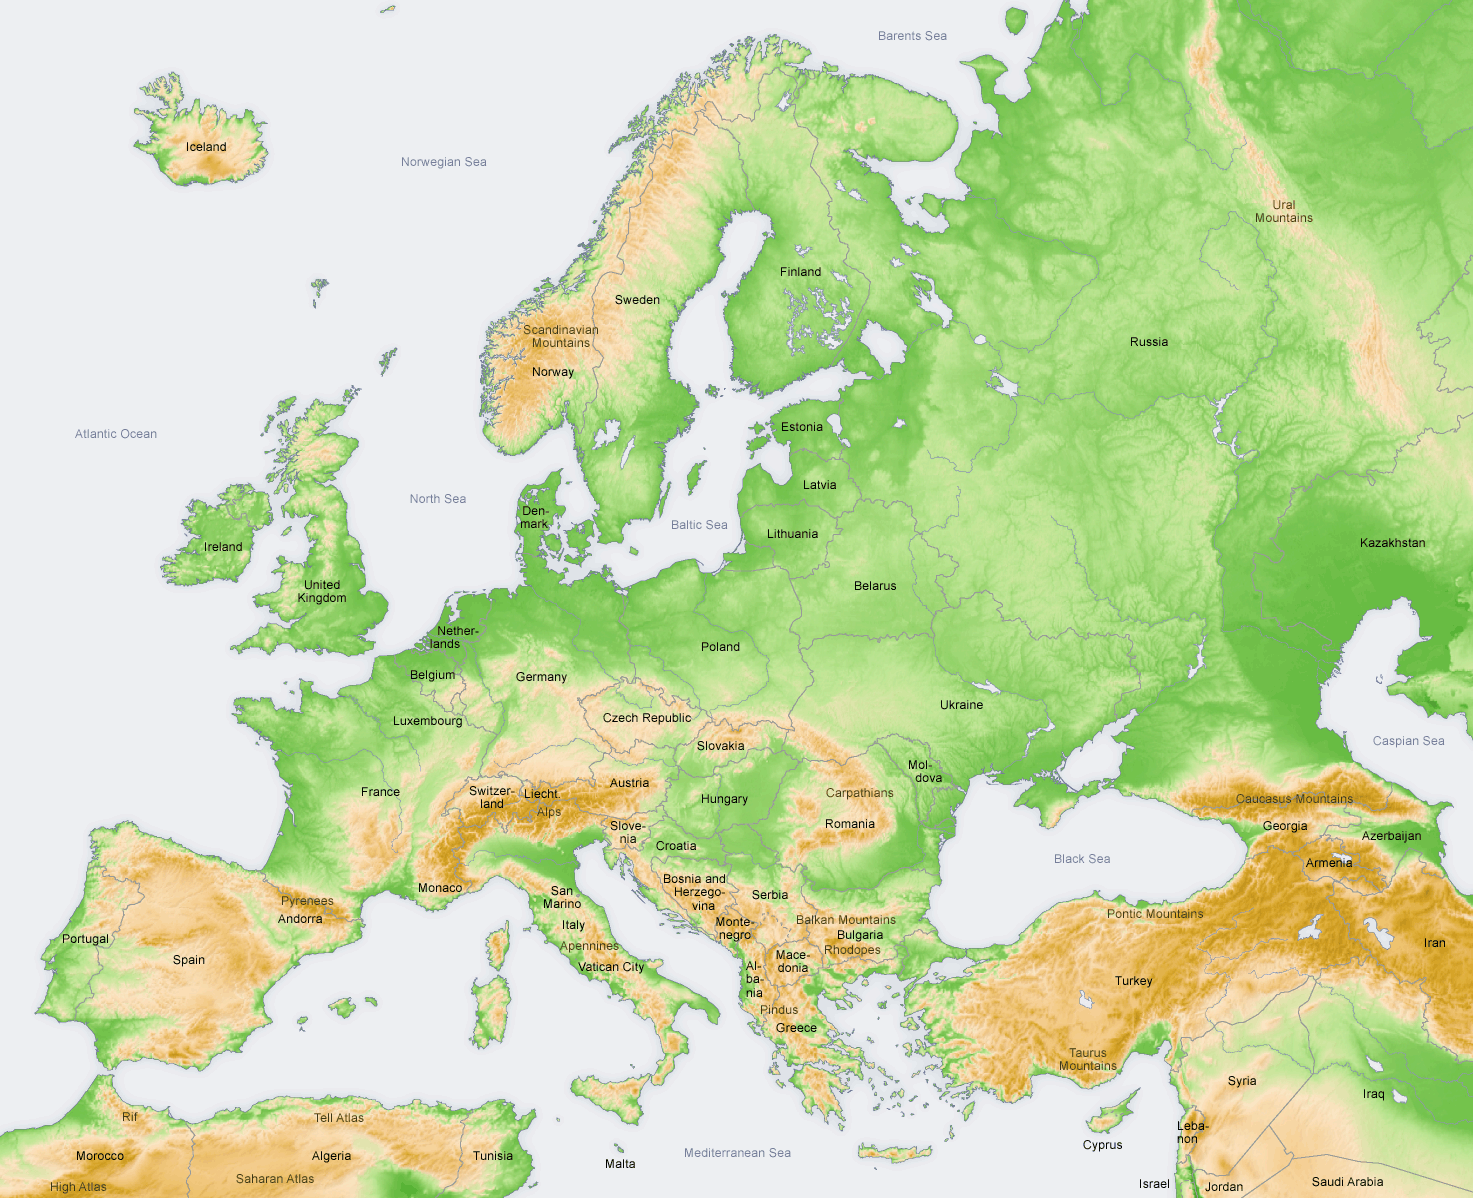 Relief map of Europe and surrounding regions